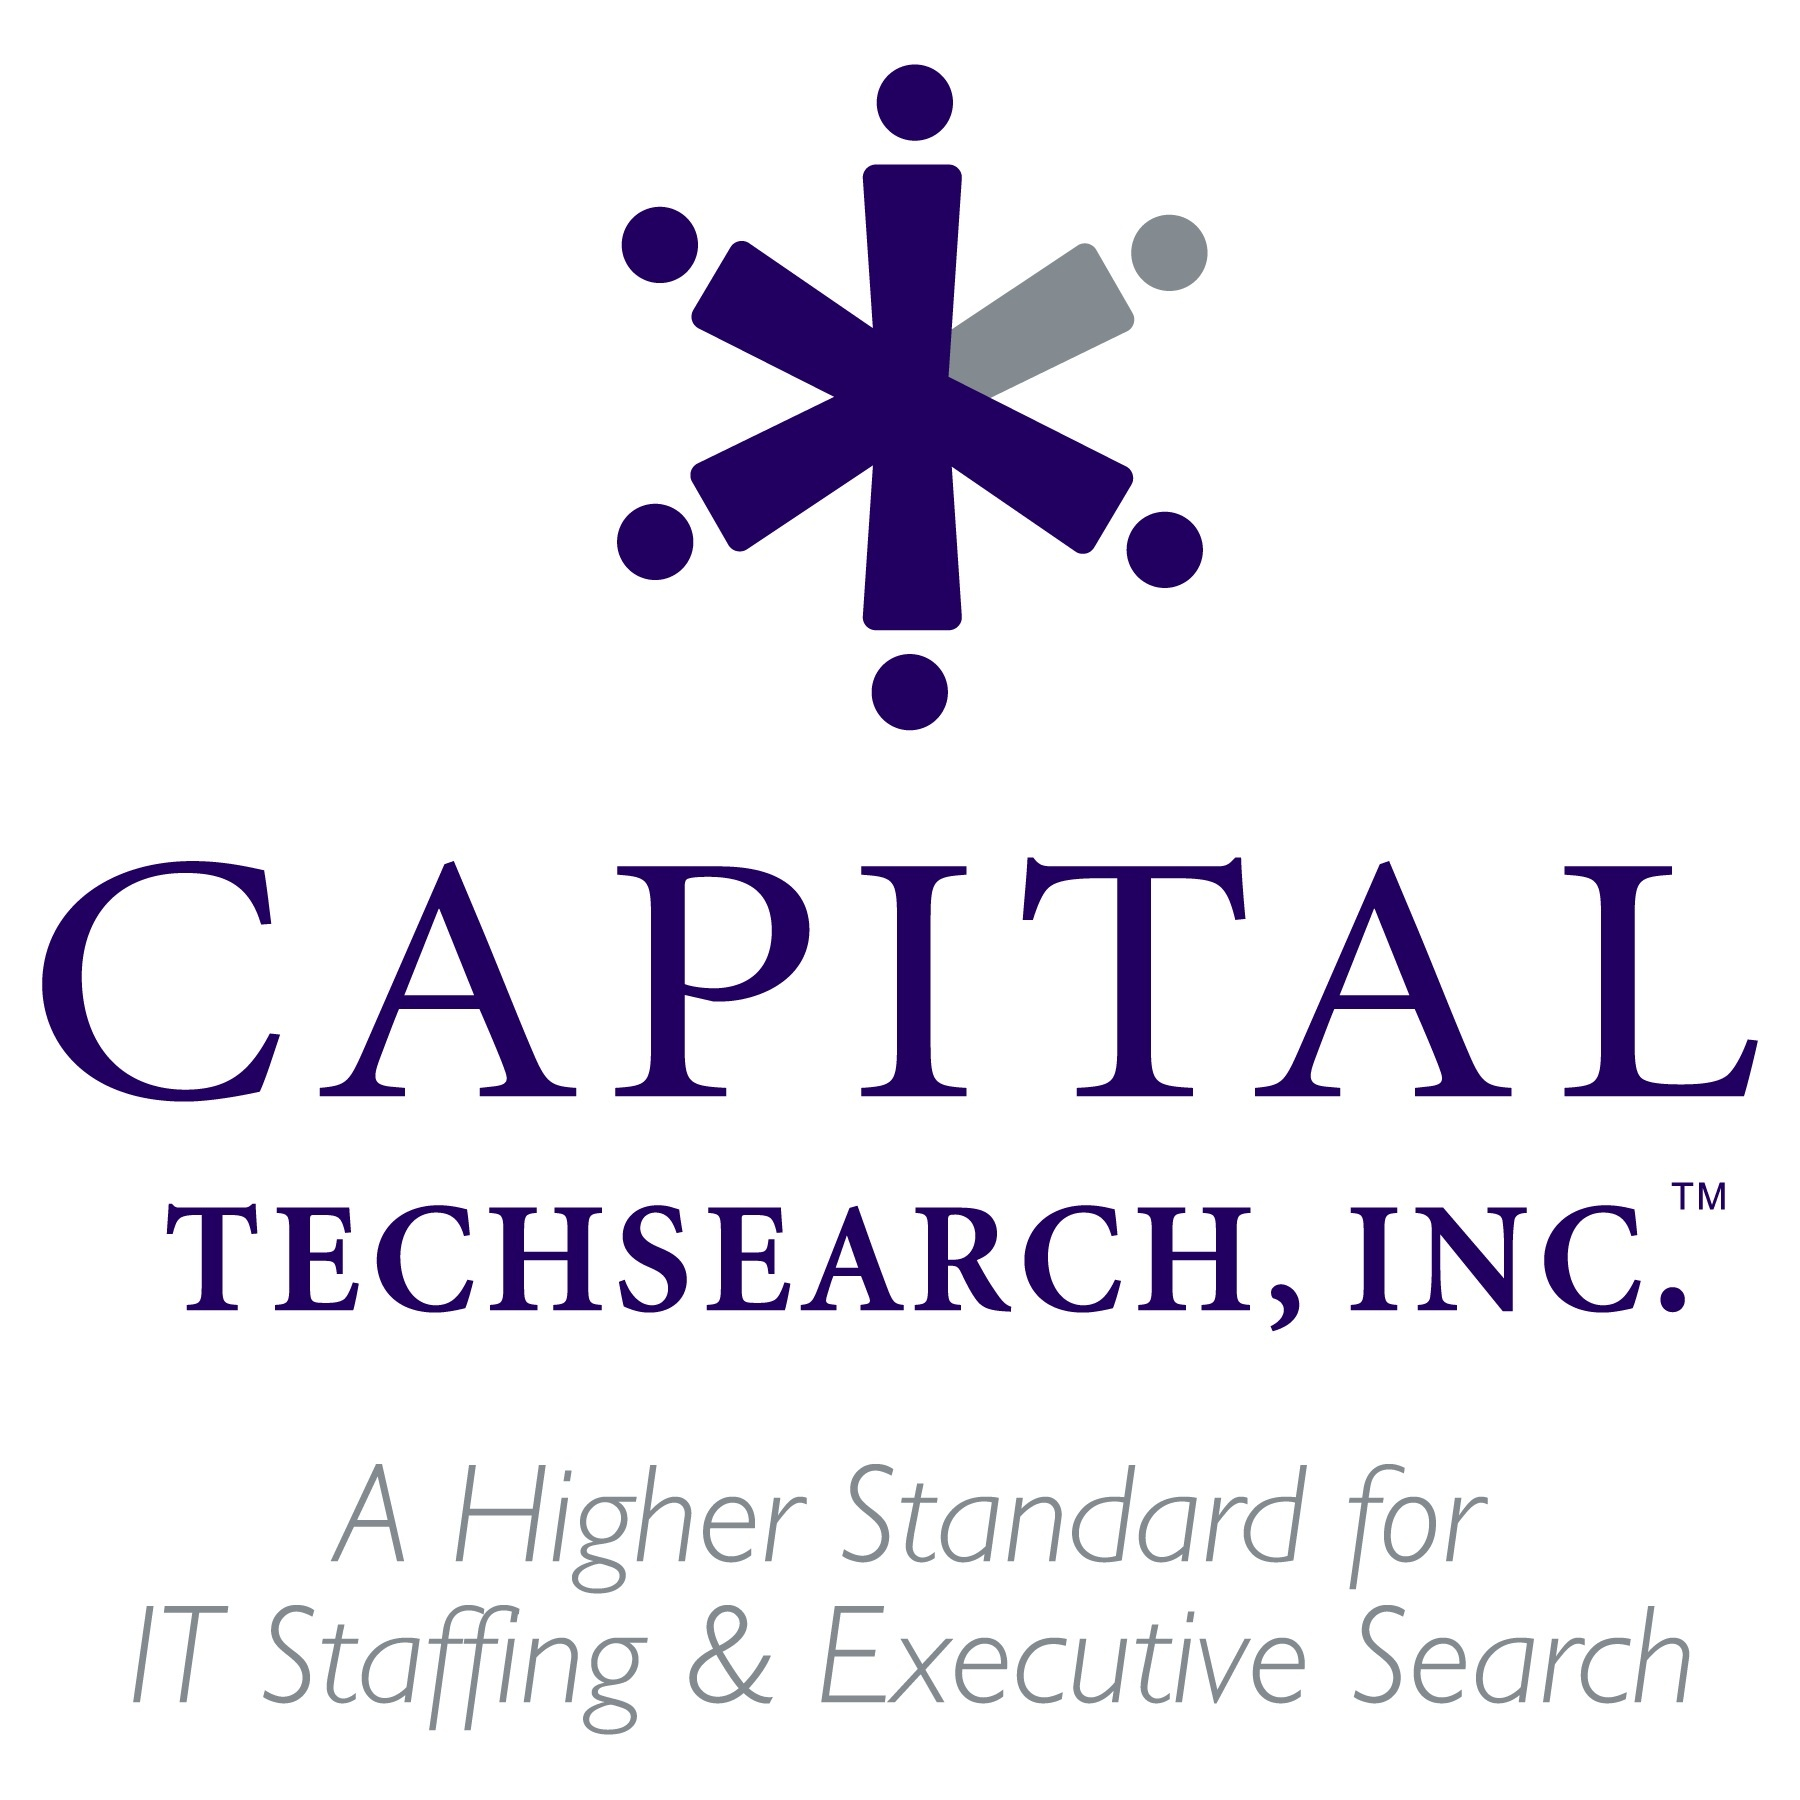 capitaltechsearch-tagline.jpg